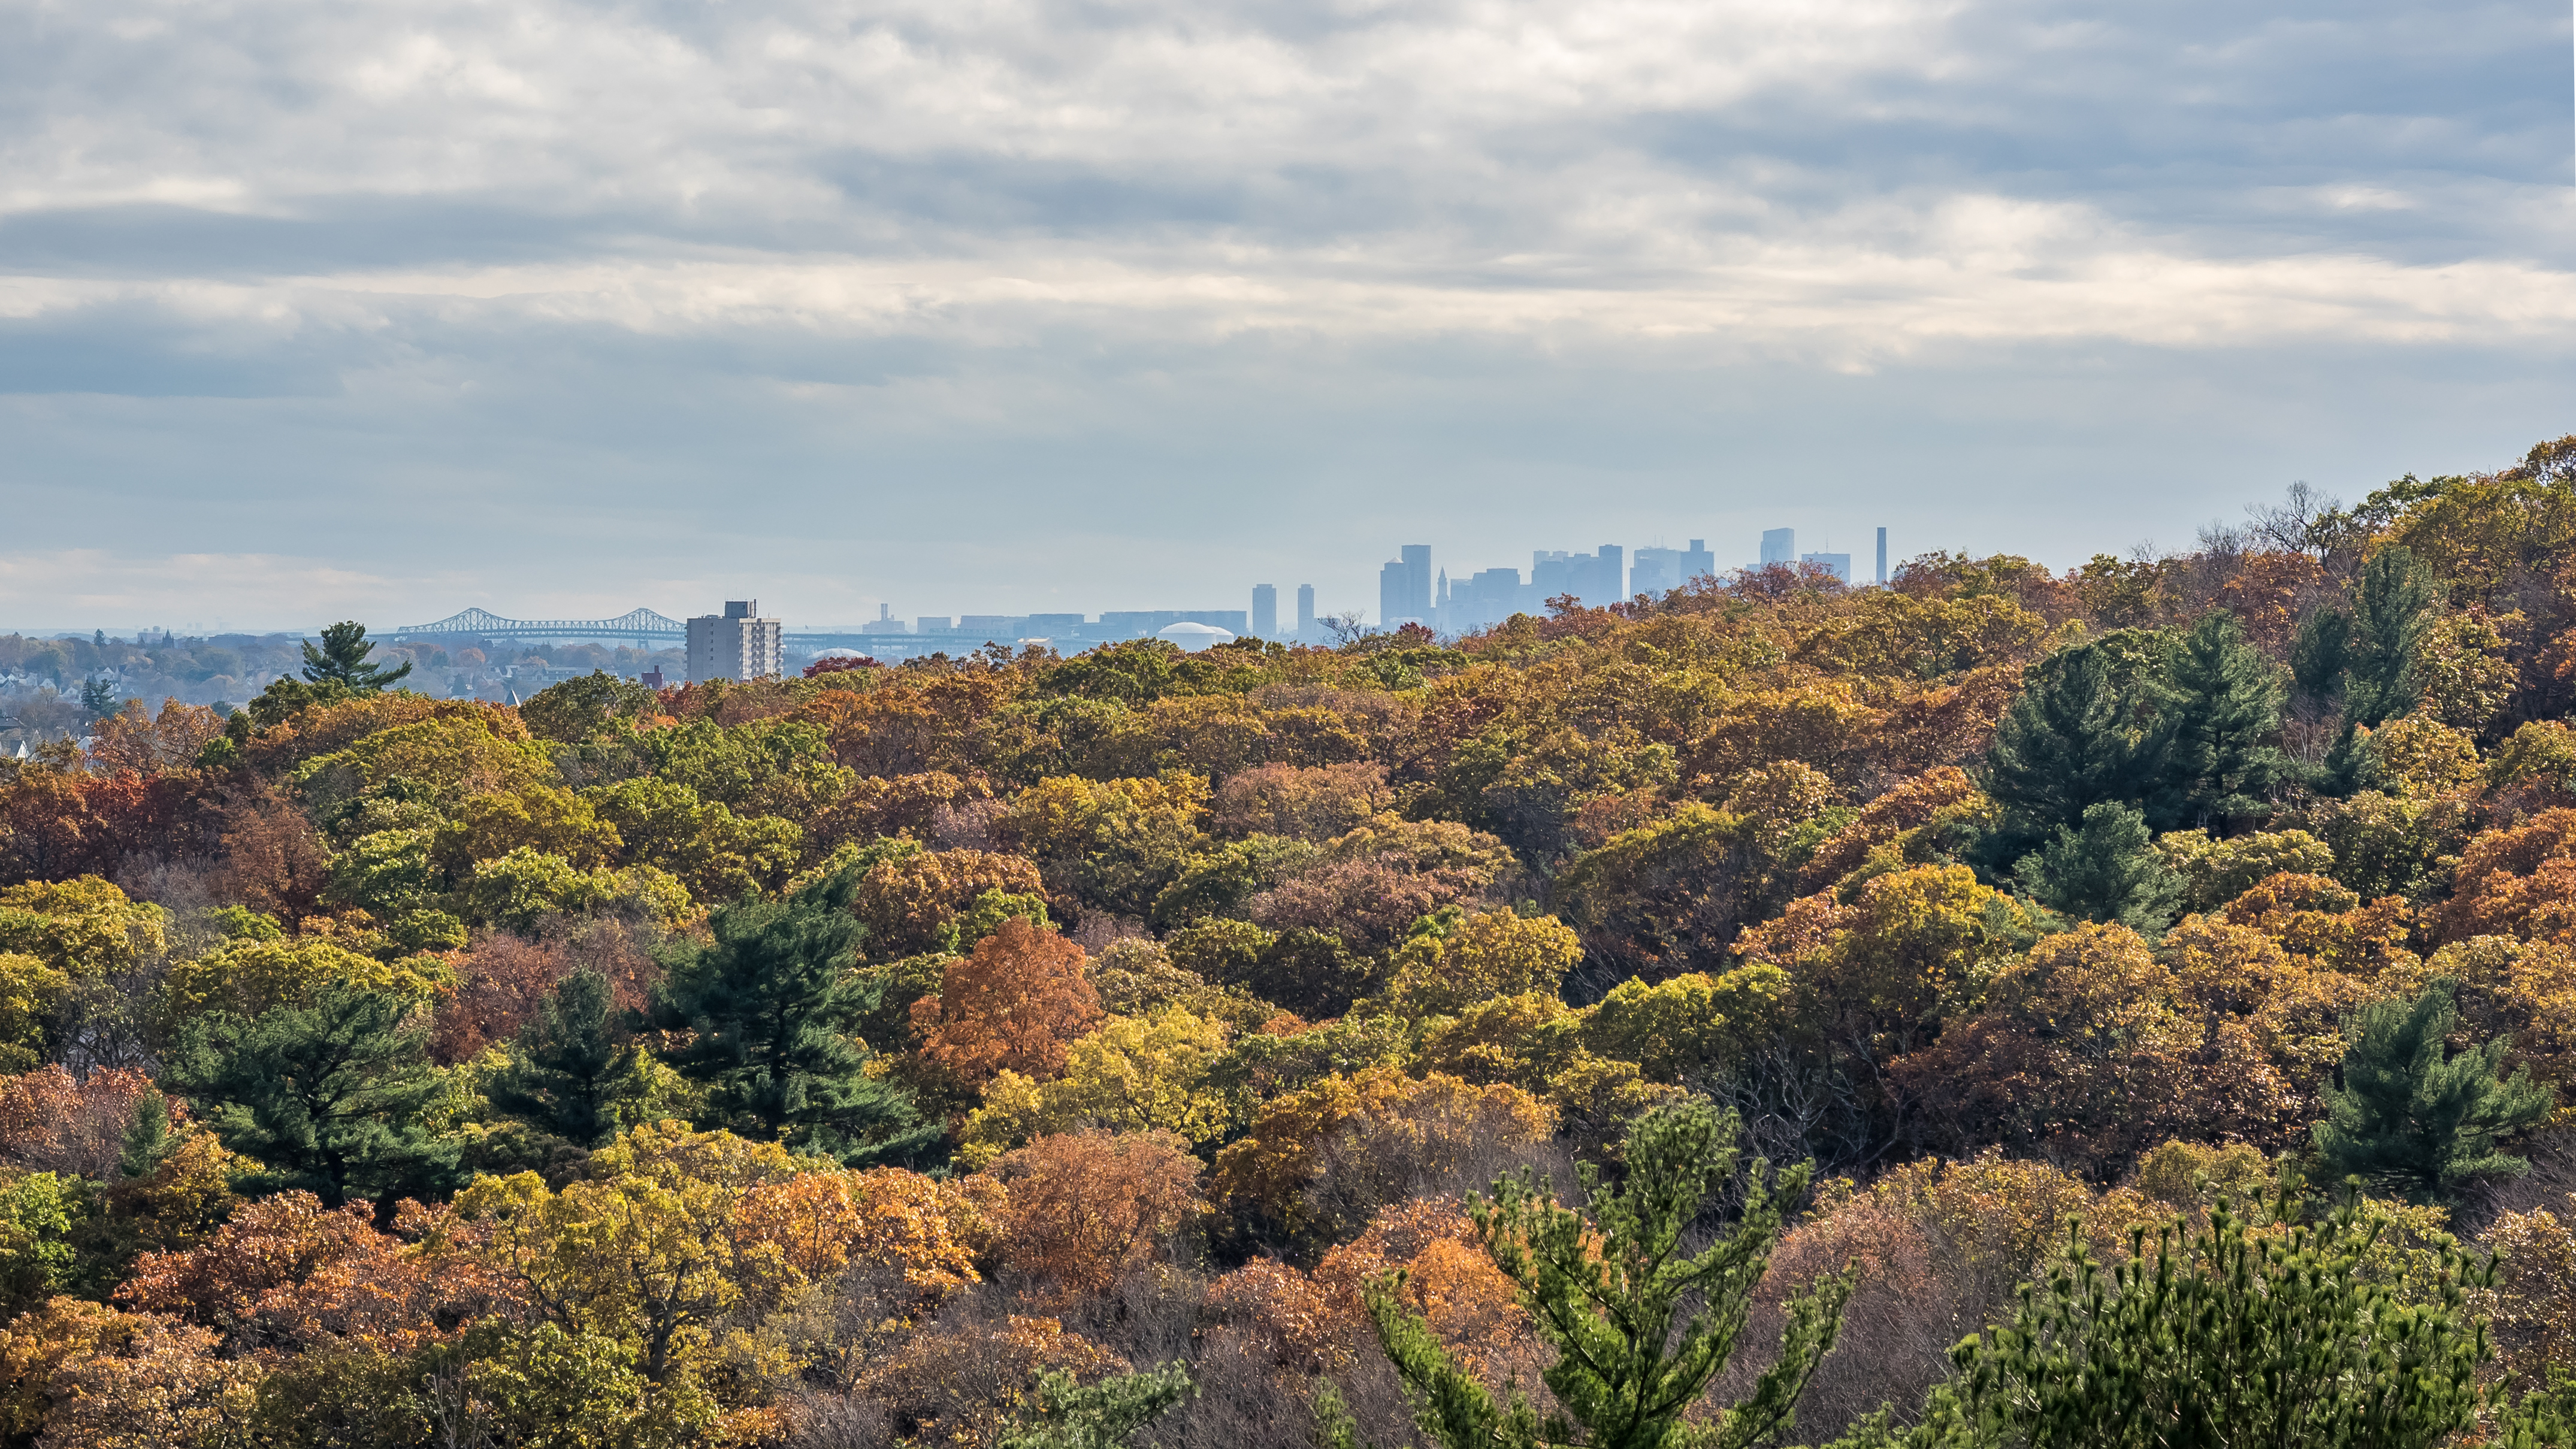 Multicolored trees clustered together in the foreground, with a city skyline in the background.